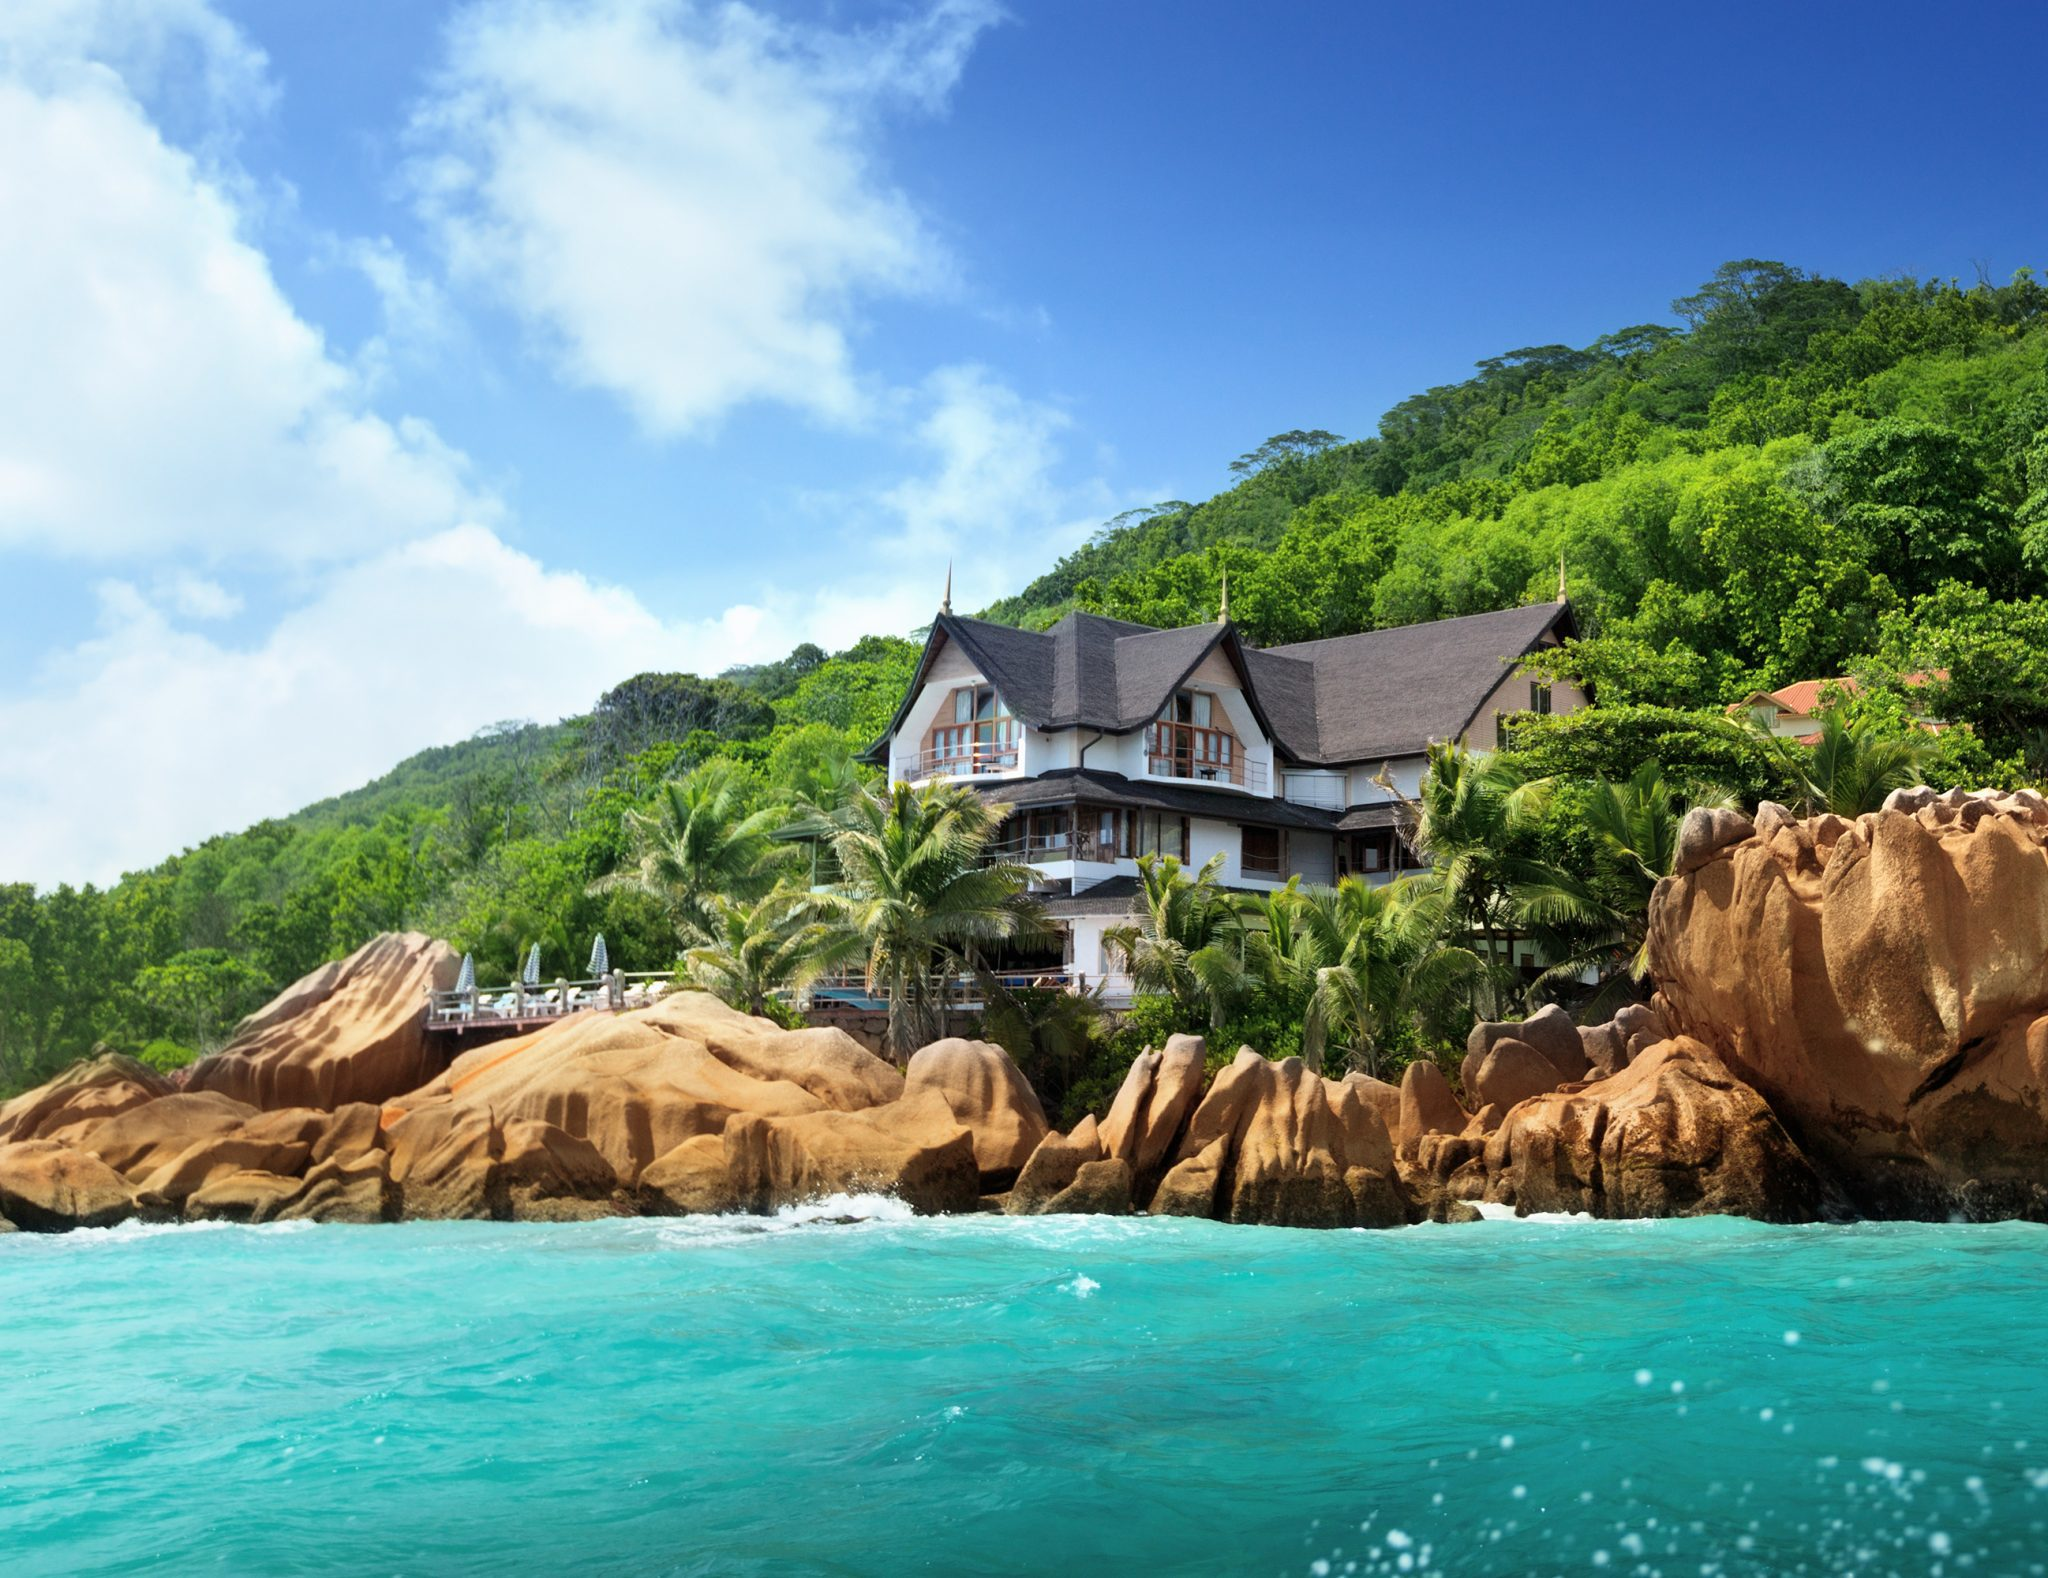 5 Places to Experience 'Another World' in the Seychelles